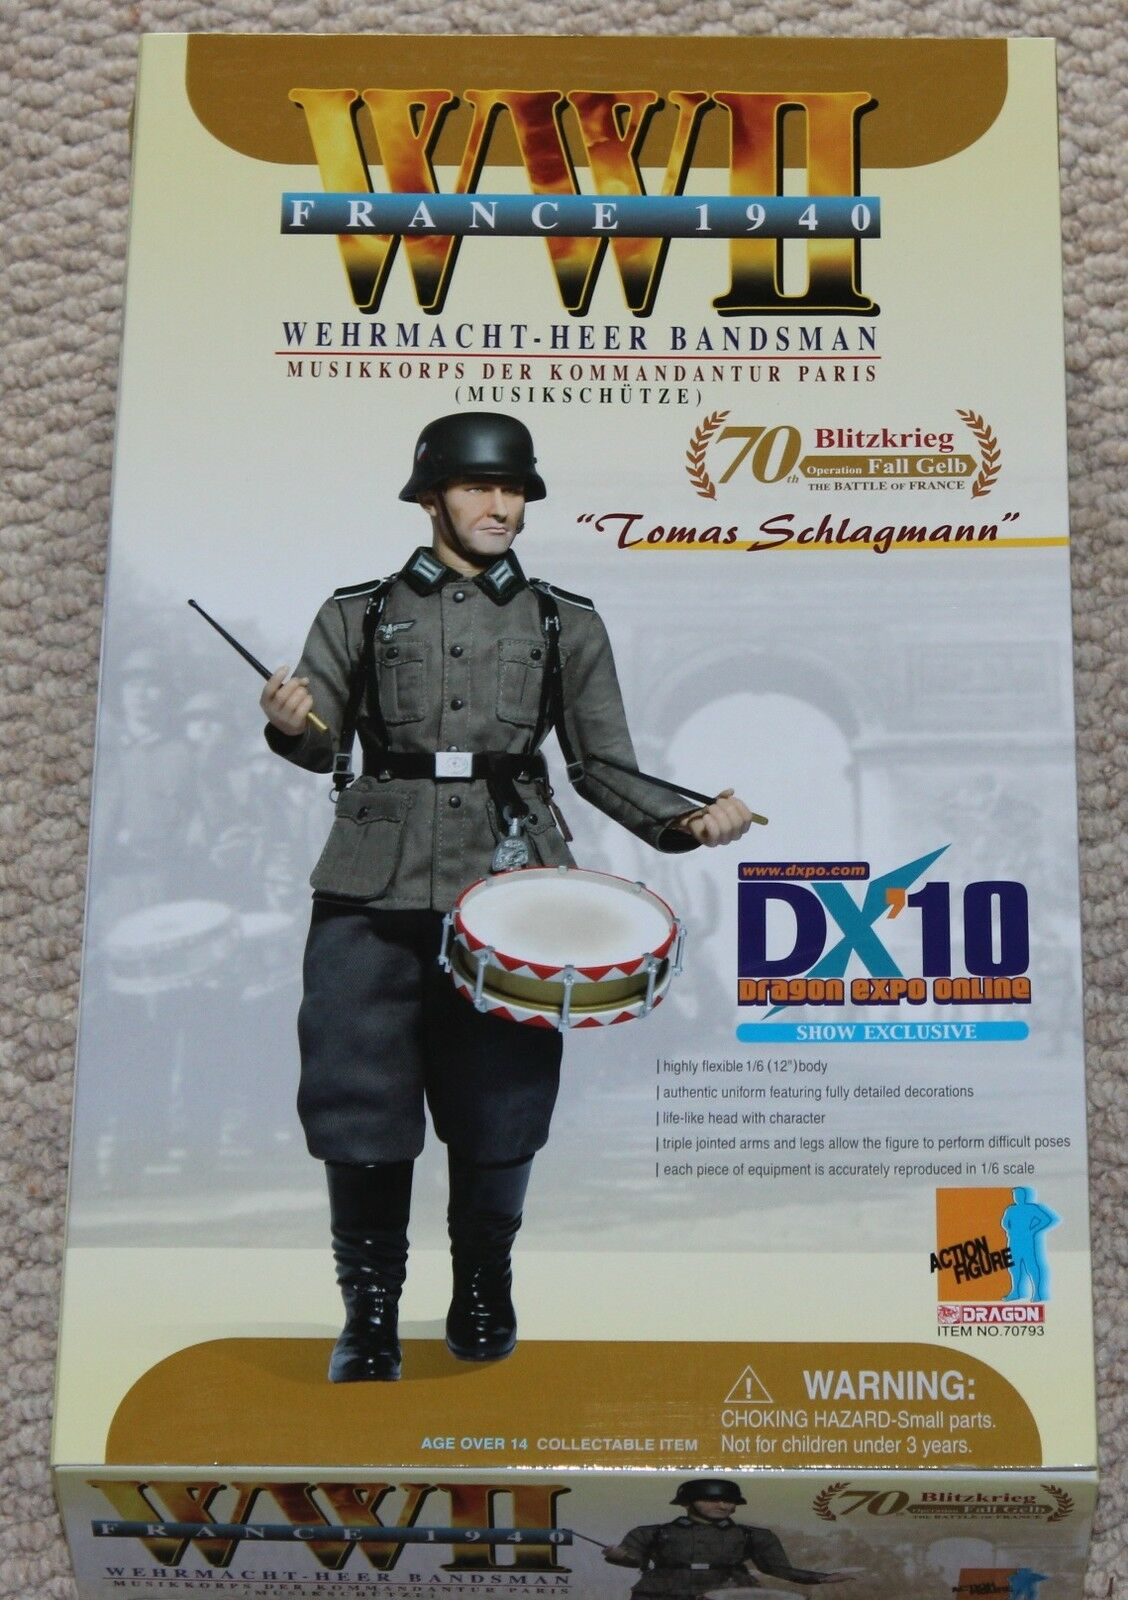 Dragon action figure ww11 dx10 lomas german 1/6 12'' box 70793 did cyber hot toy